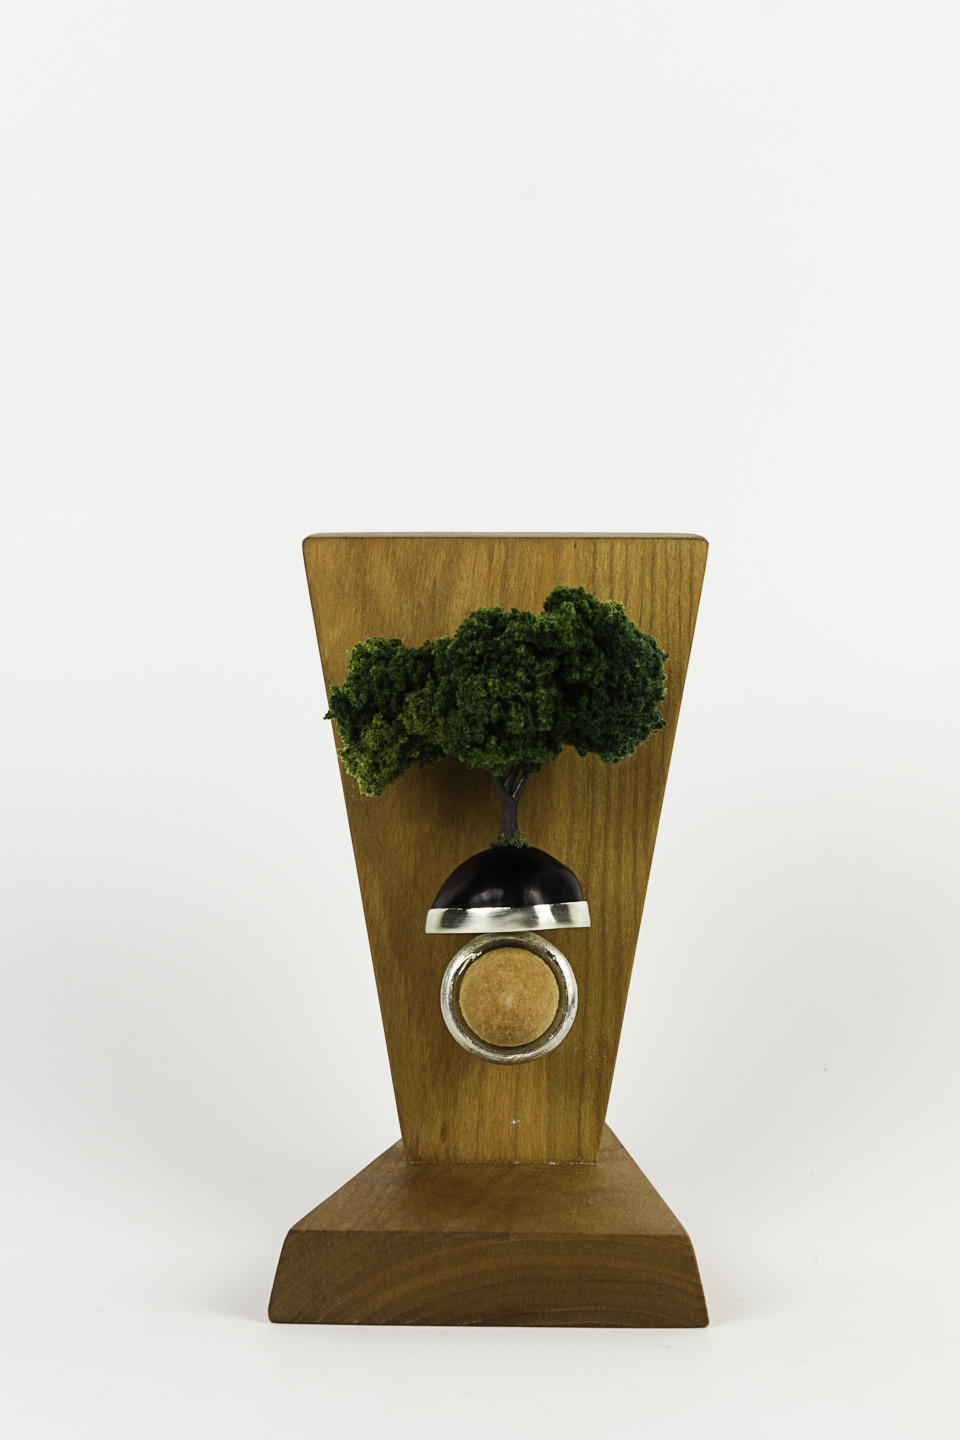 Sarah Hood   Oak Ring , 2011  Sterling silver, chestnut, model railroad materials, cherry wood stain